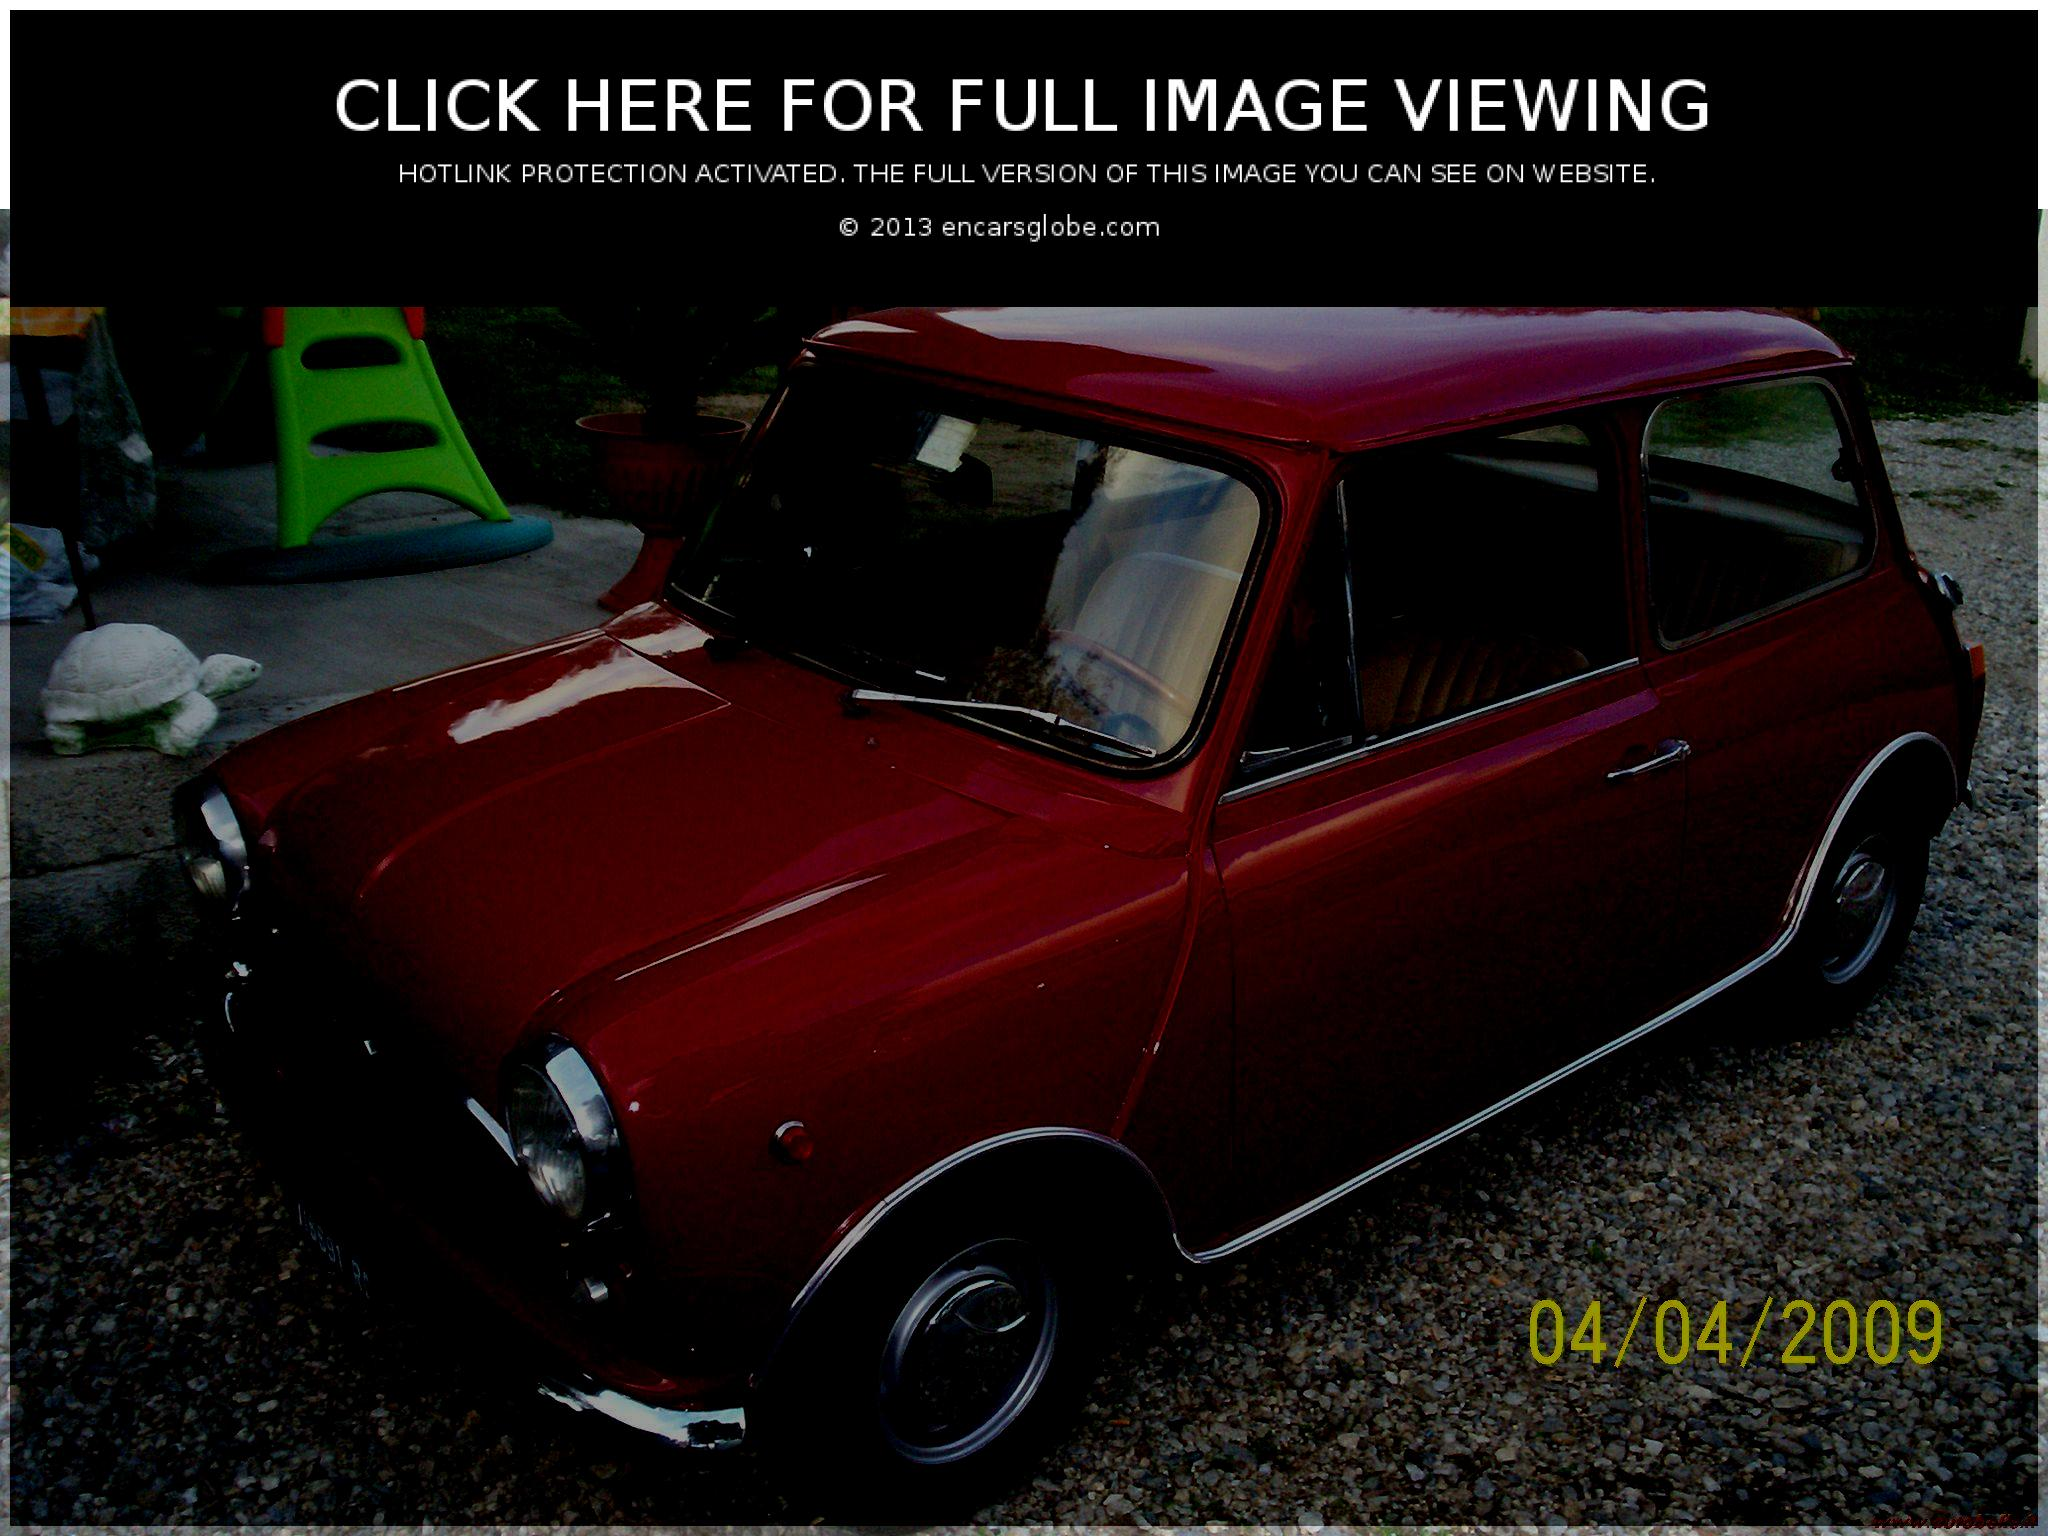 Innocenti Mini Minor Photo Gallery: Photo #02 out of 10, Image ...